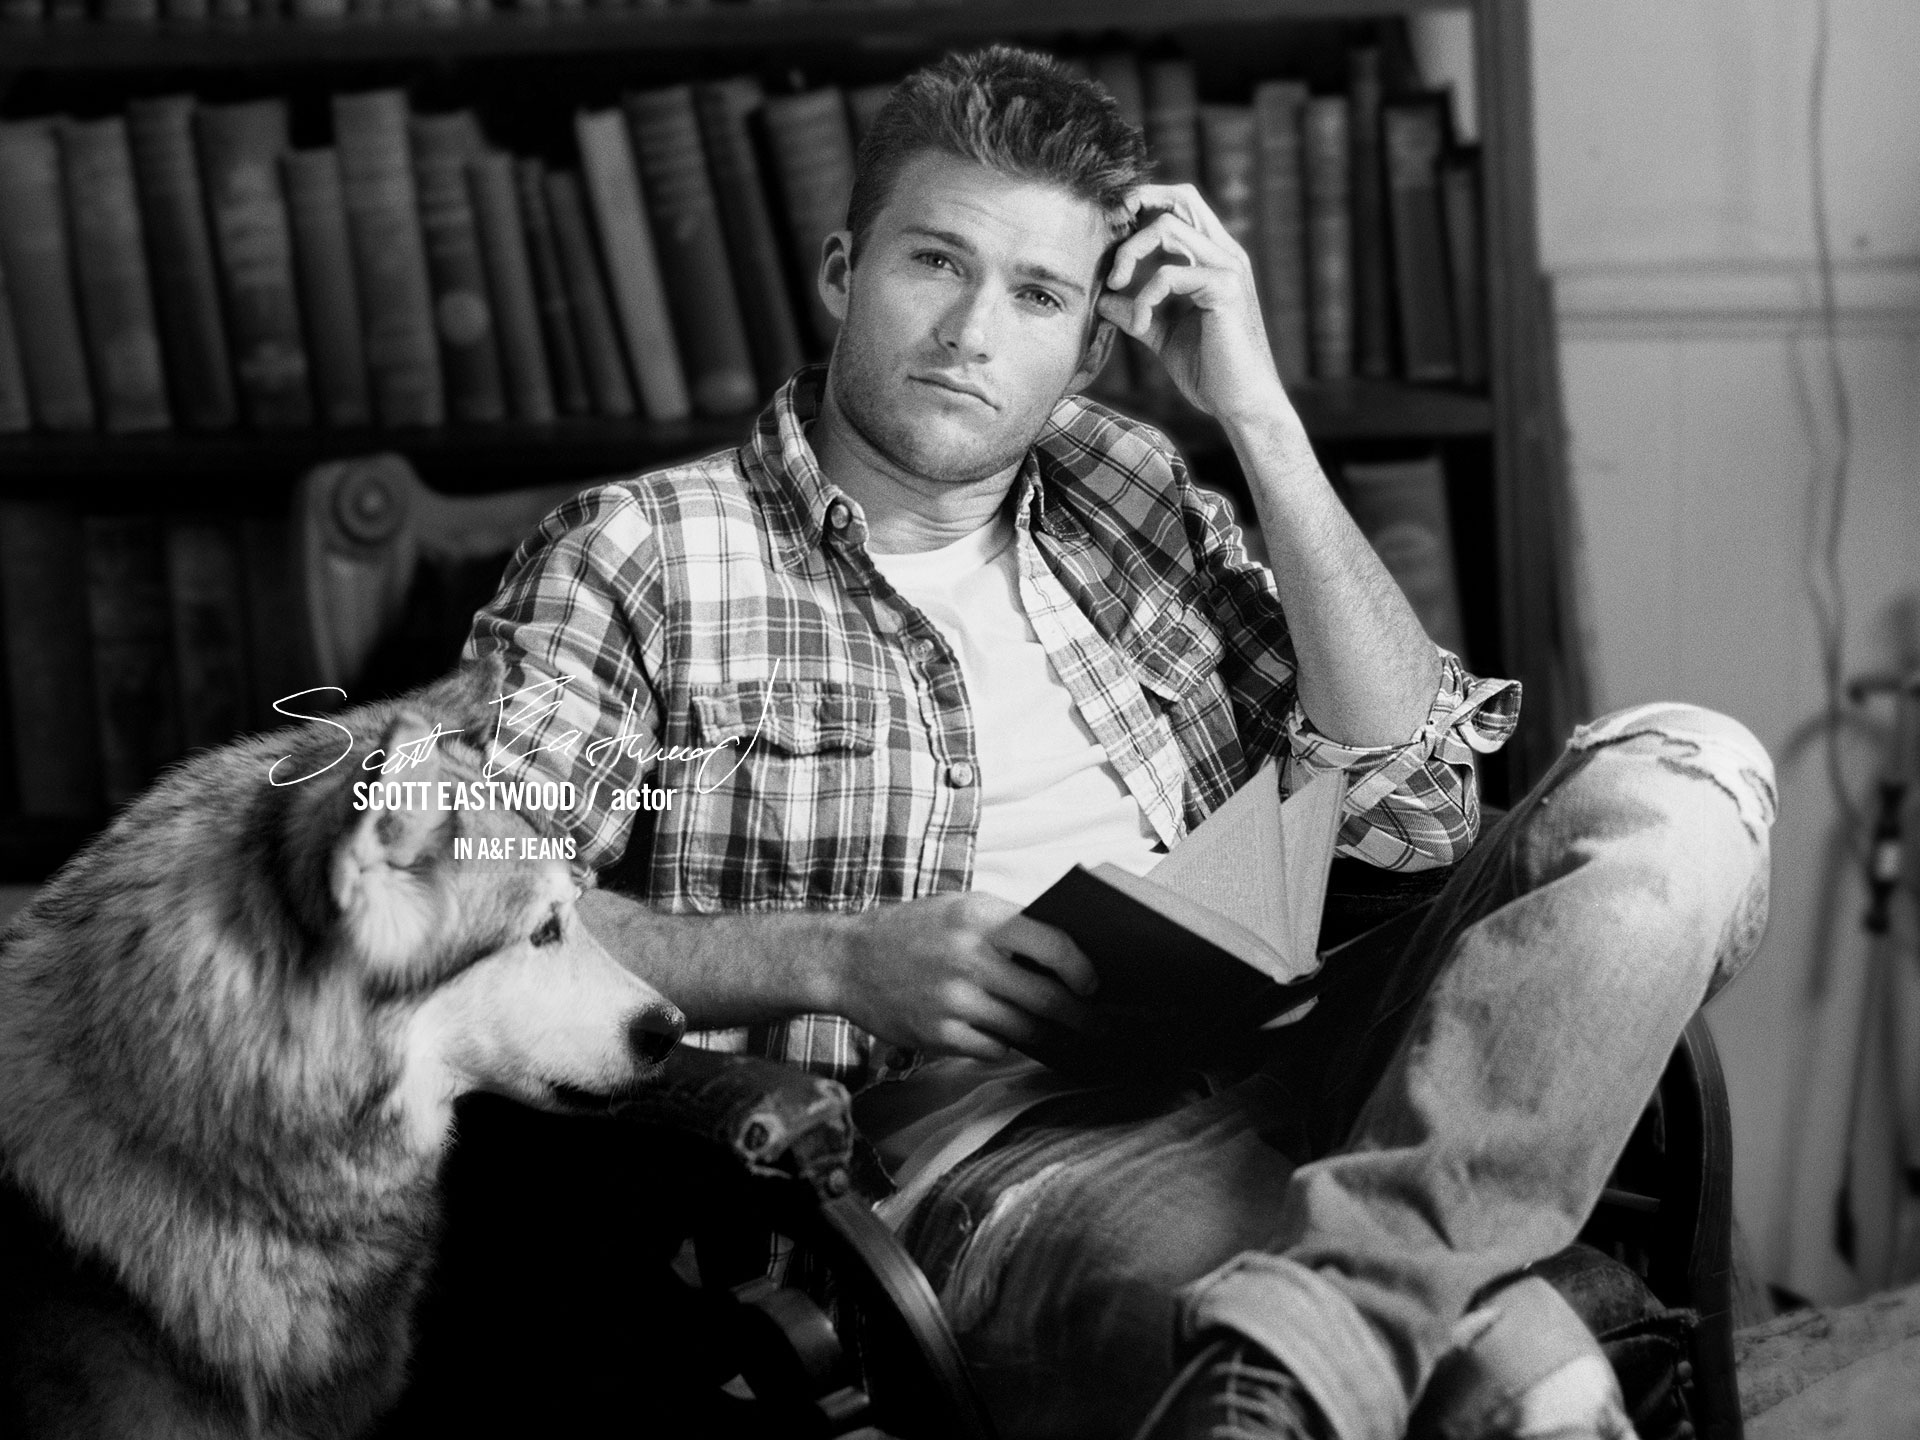 Scott Eastwood Wallpapers High Resolution and Quality Download 1920x1440